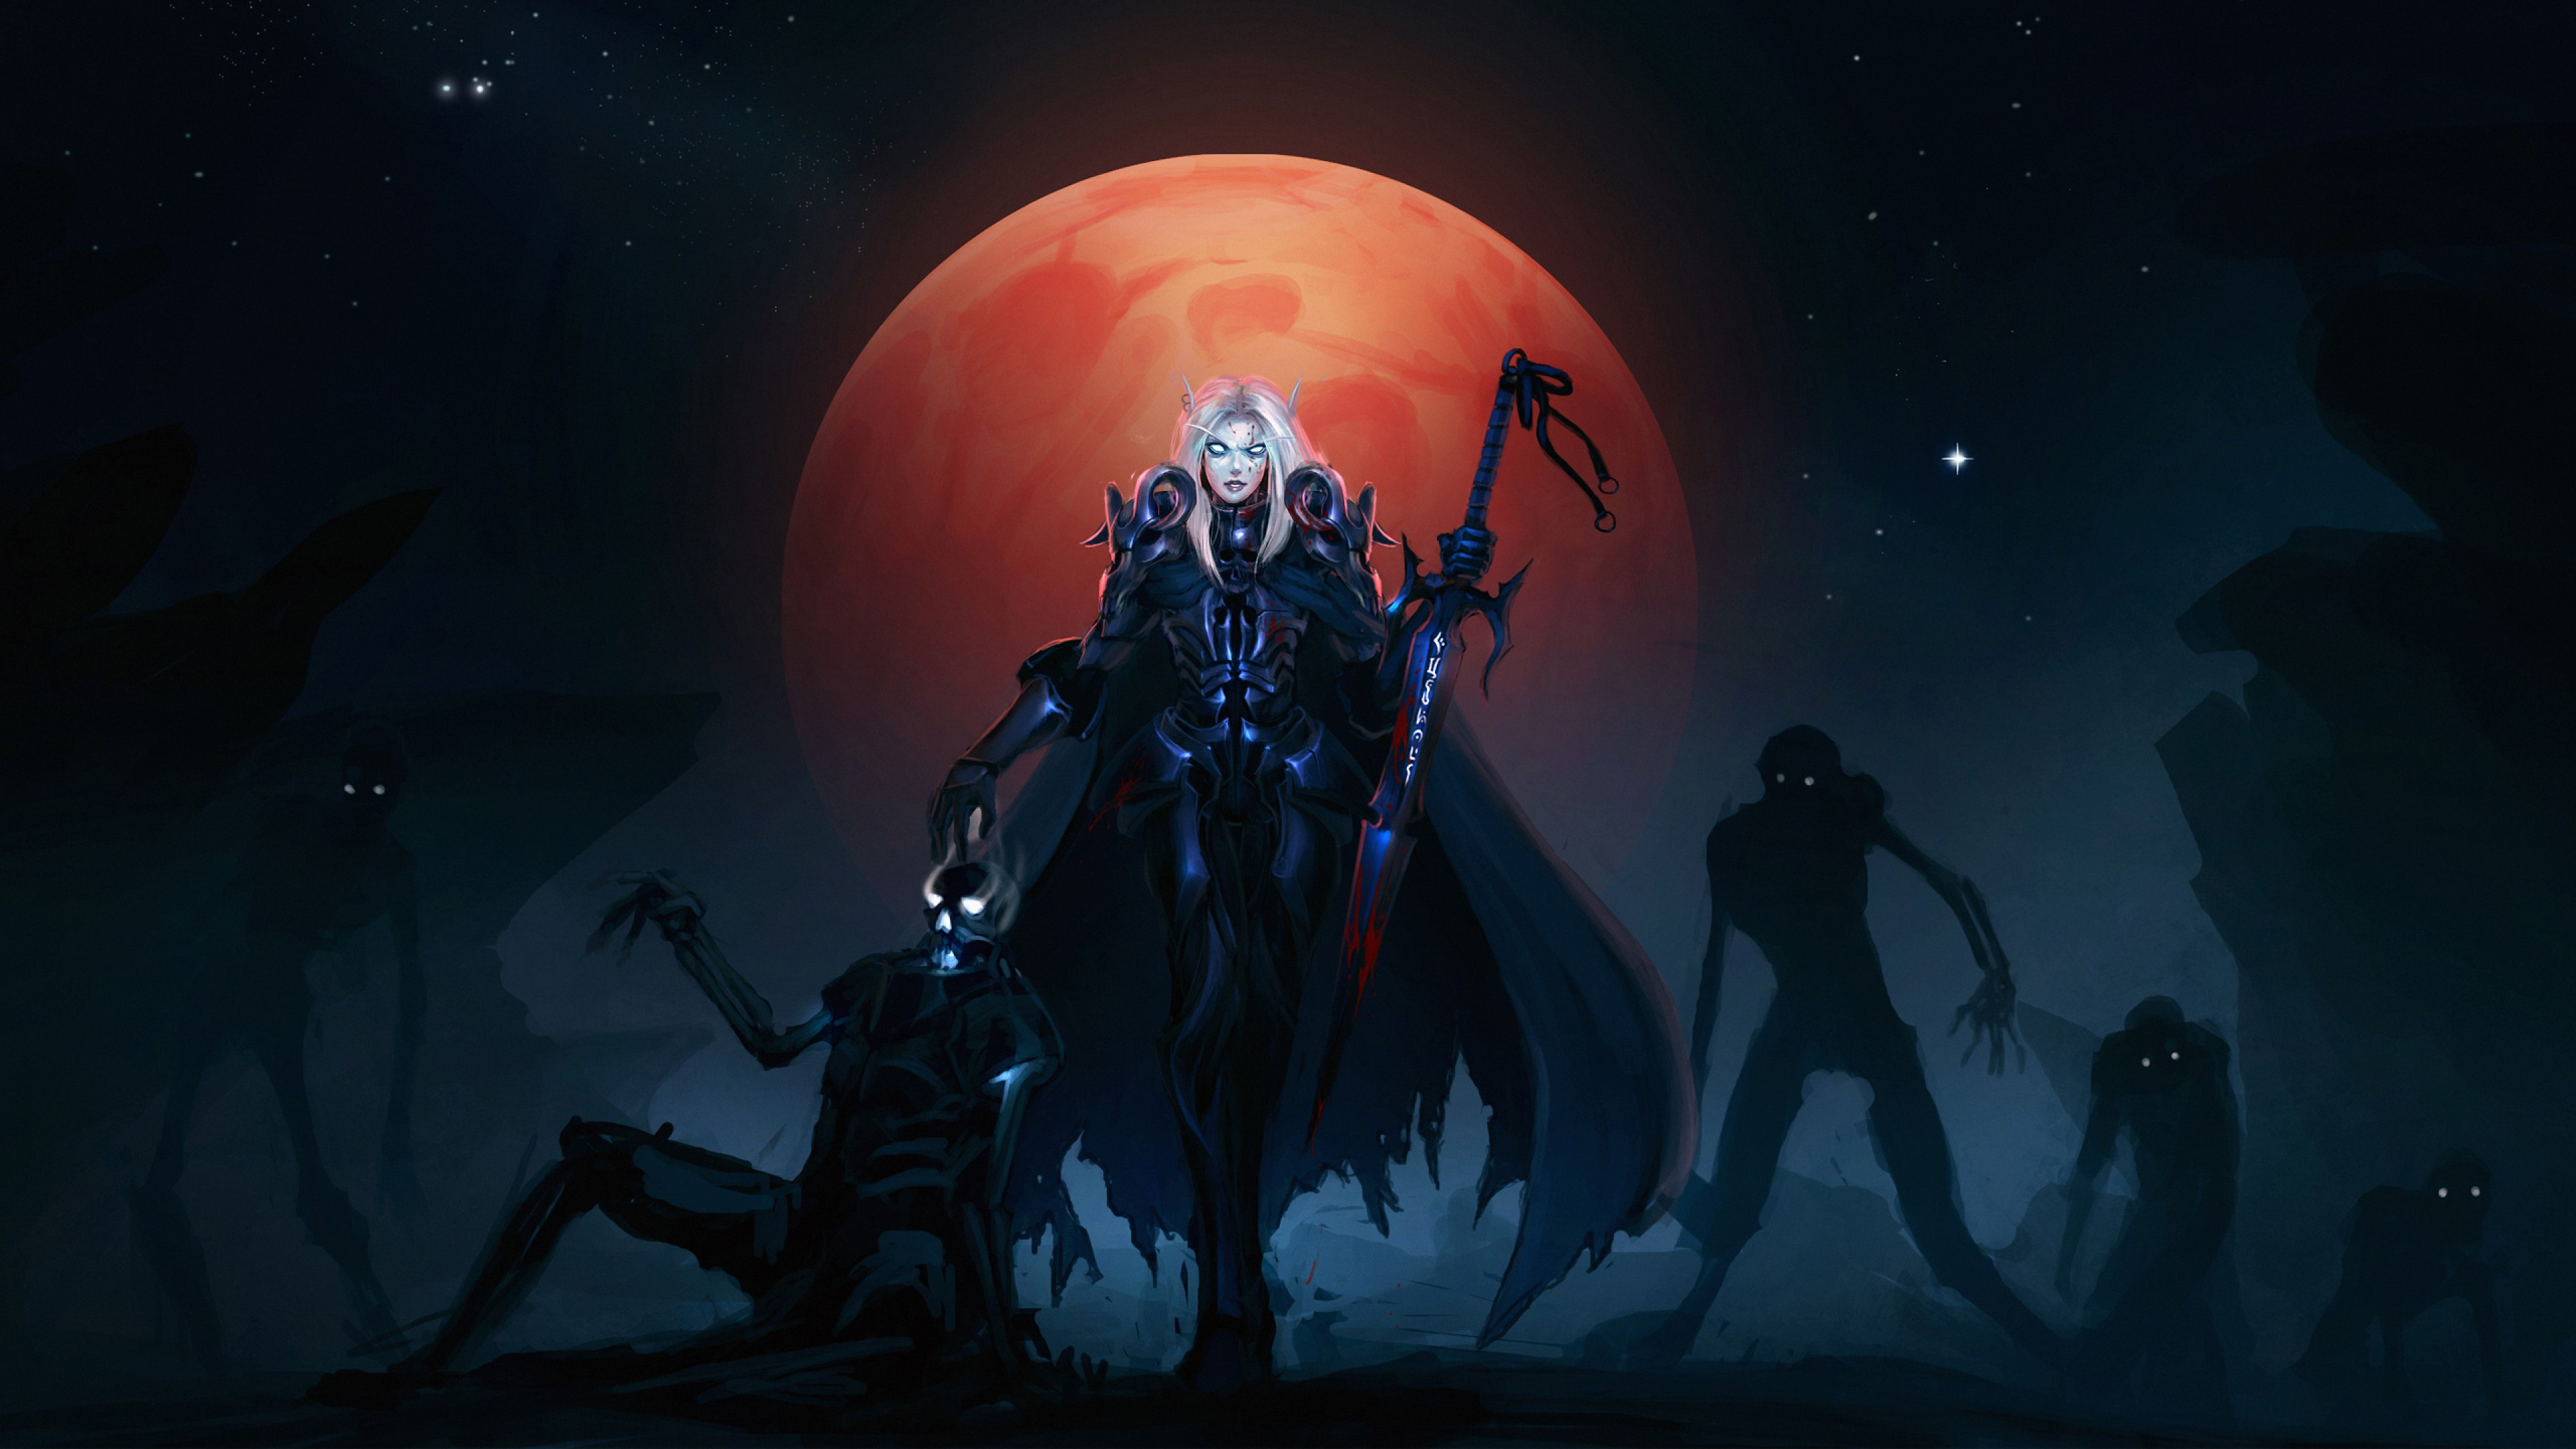 World Of Warcraft Backgrounds Hd Wallpaper For Desktop And Mobiles